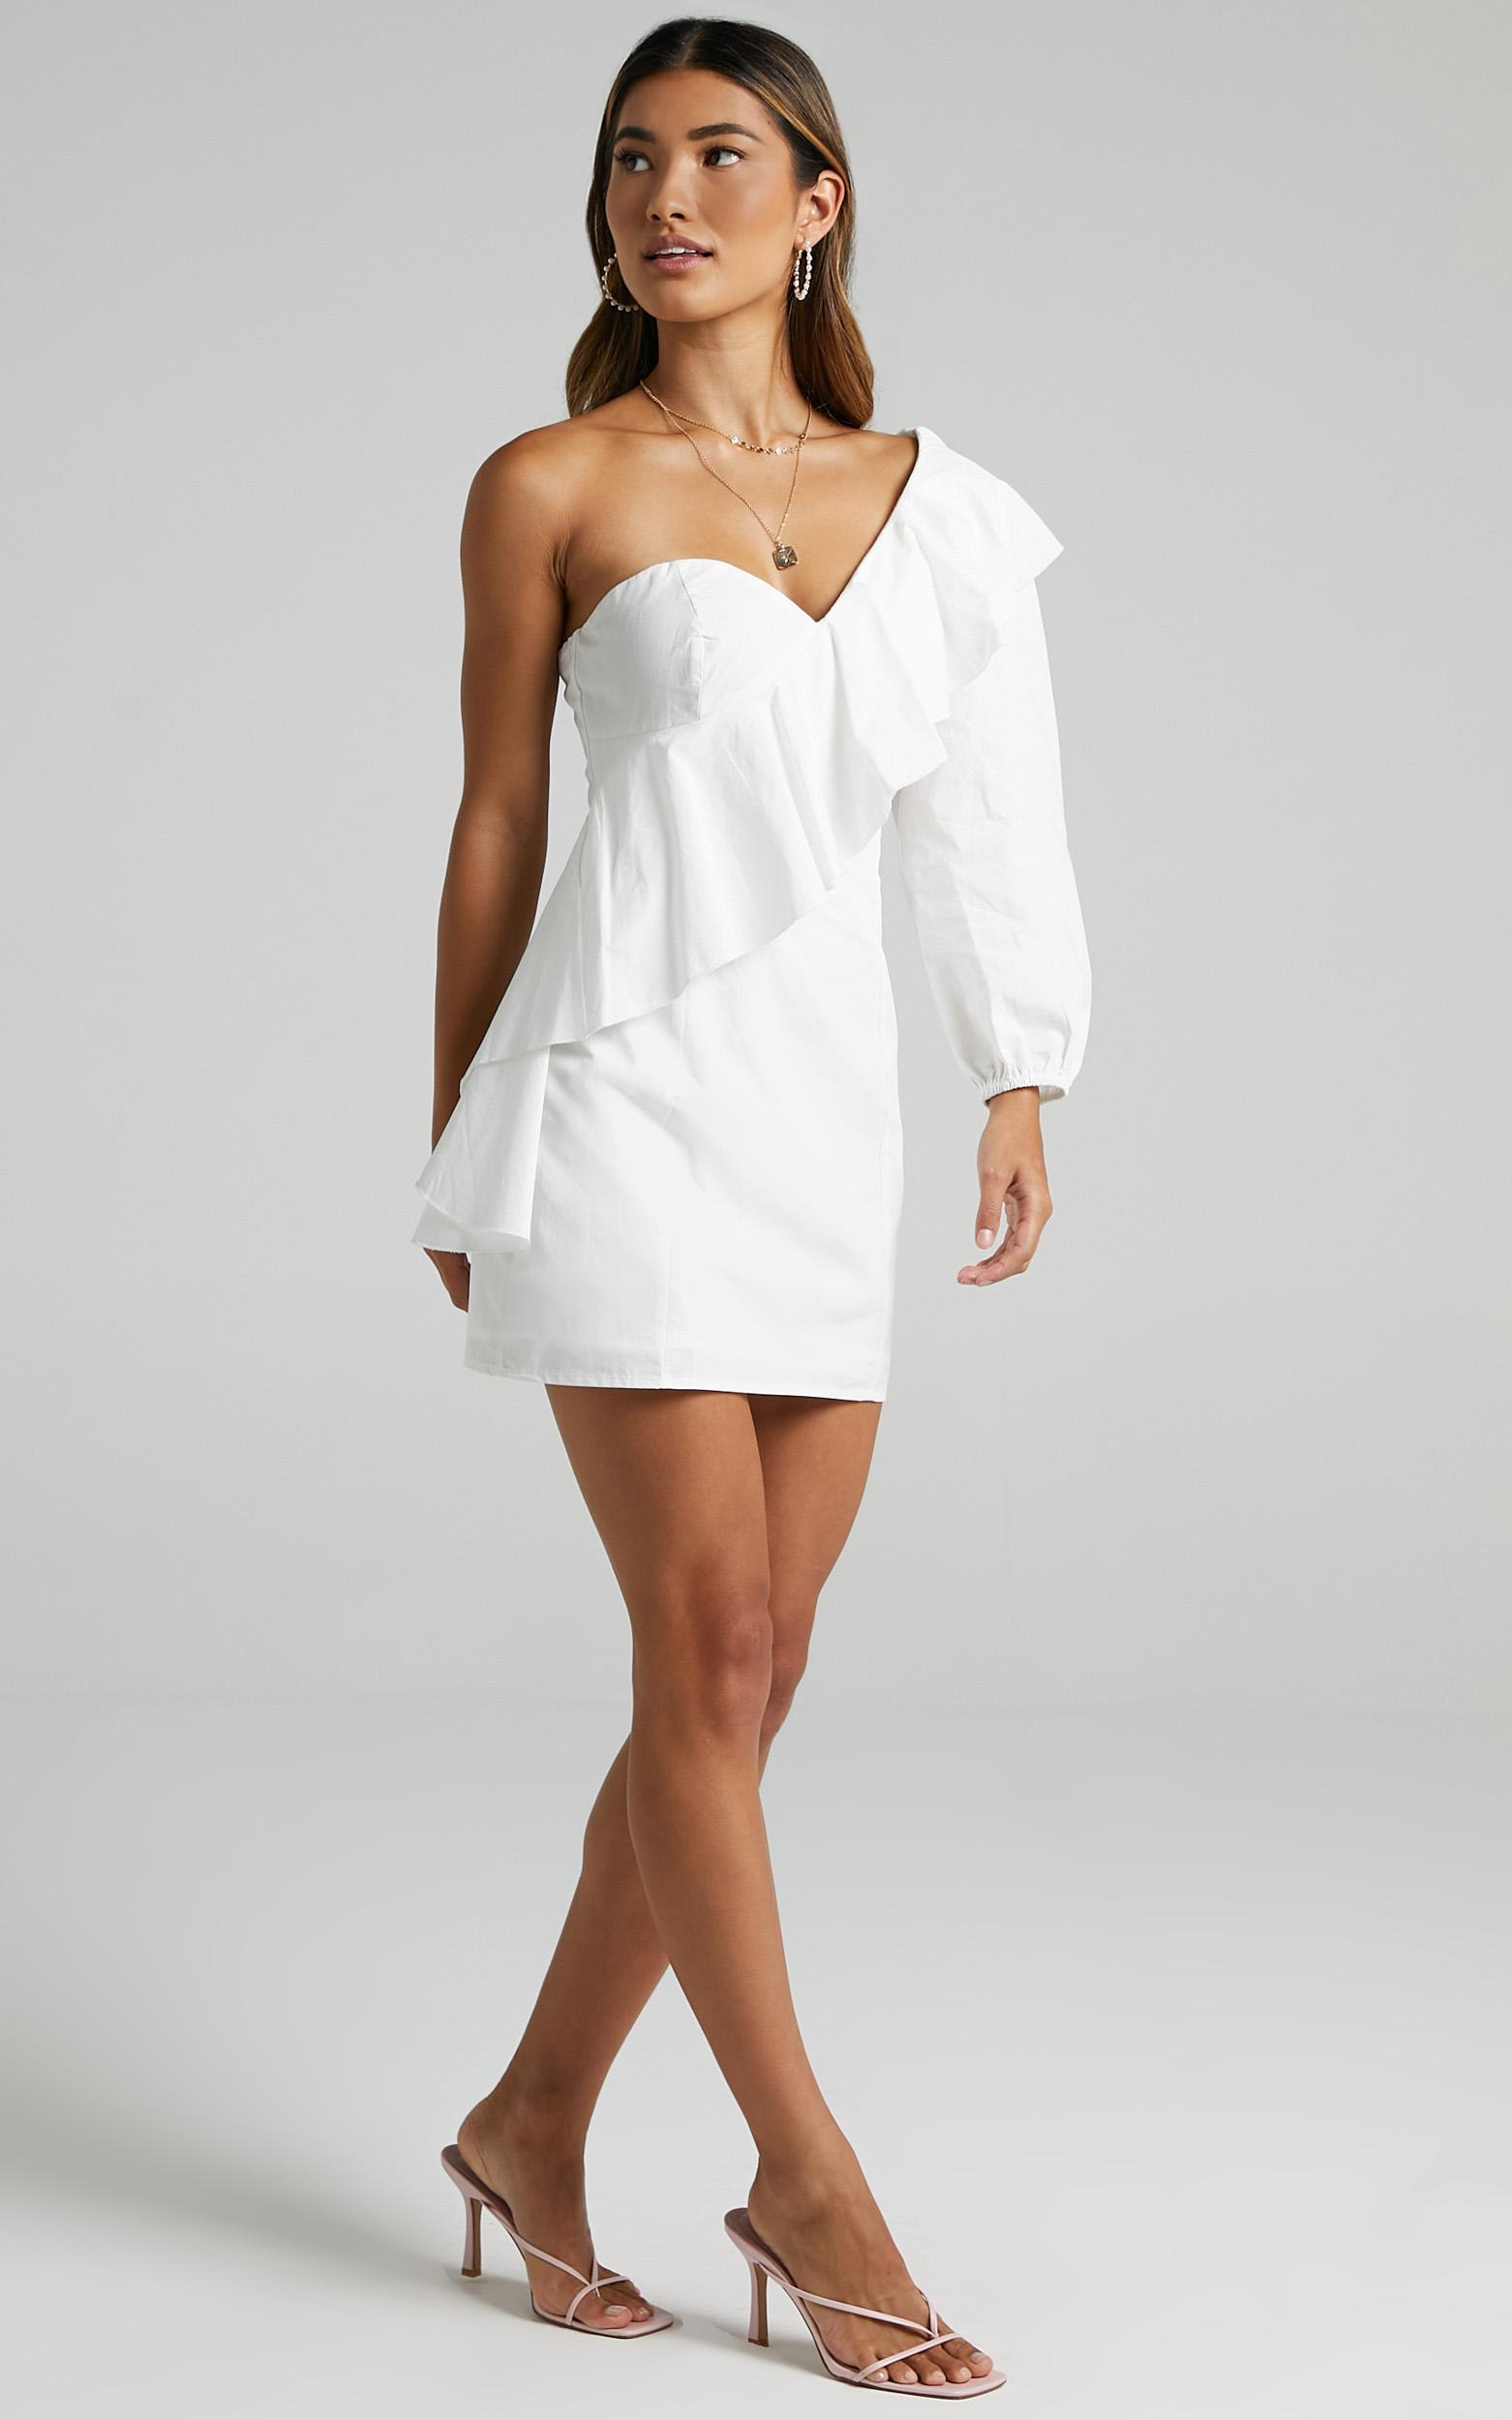 Nathaira Dress in White - 6 (XS), White, hi-res image number null